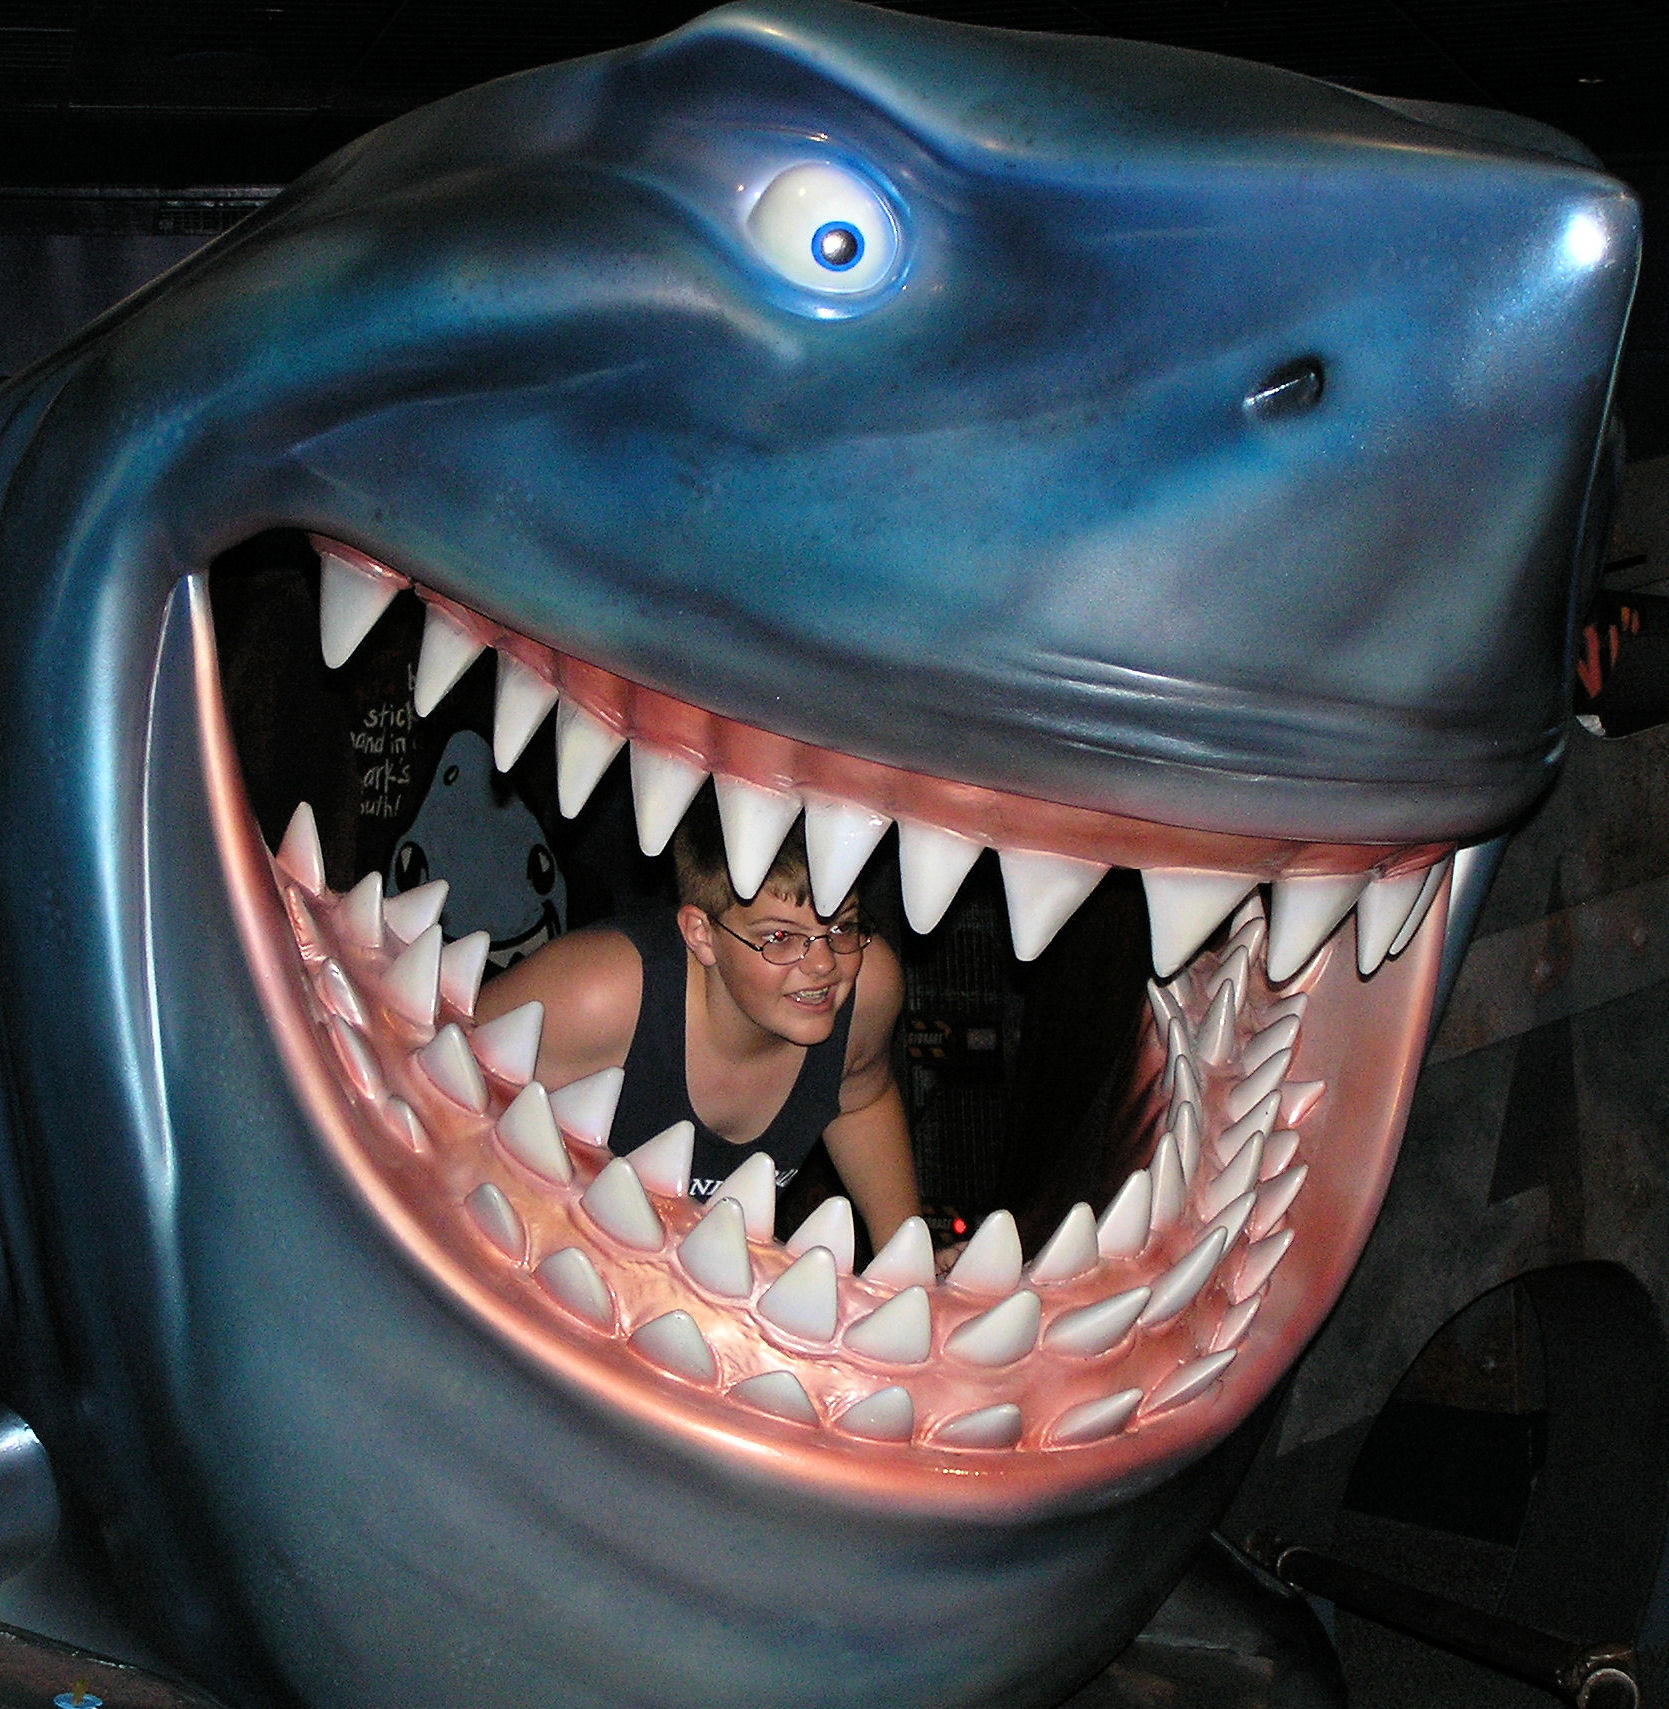 Me inside Bruce from Finding Nemo at The Seas with Nemo and Friends at EPCOT.